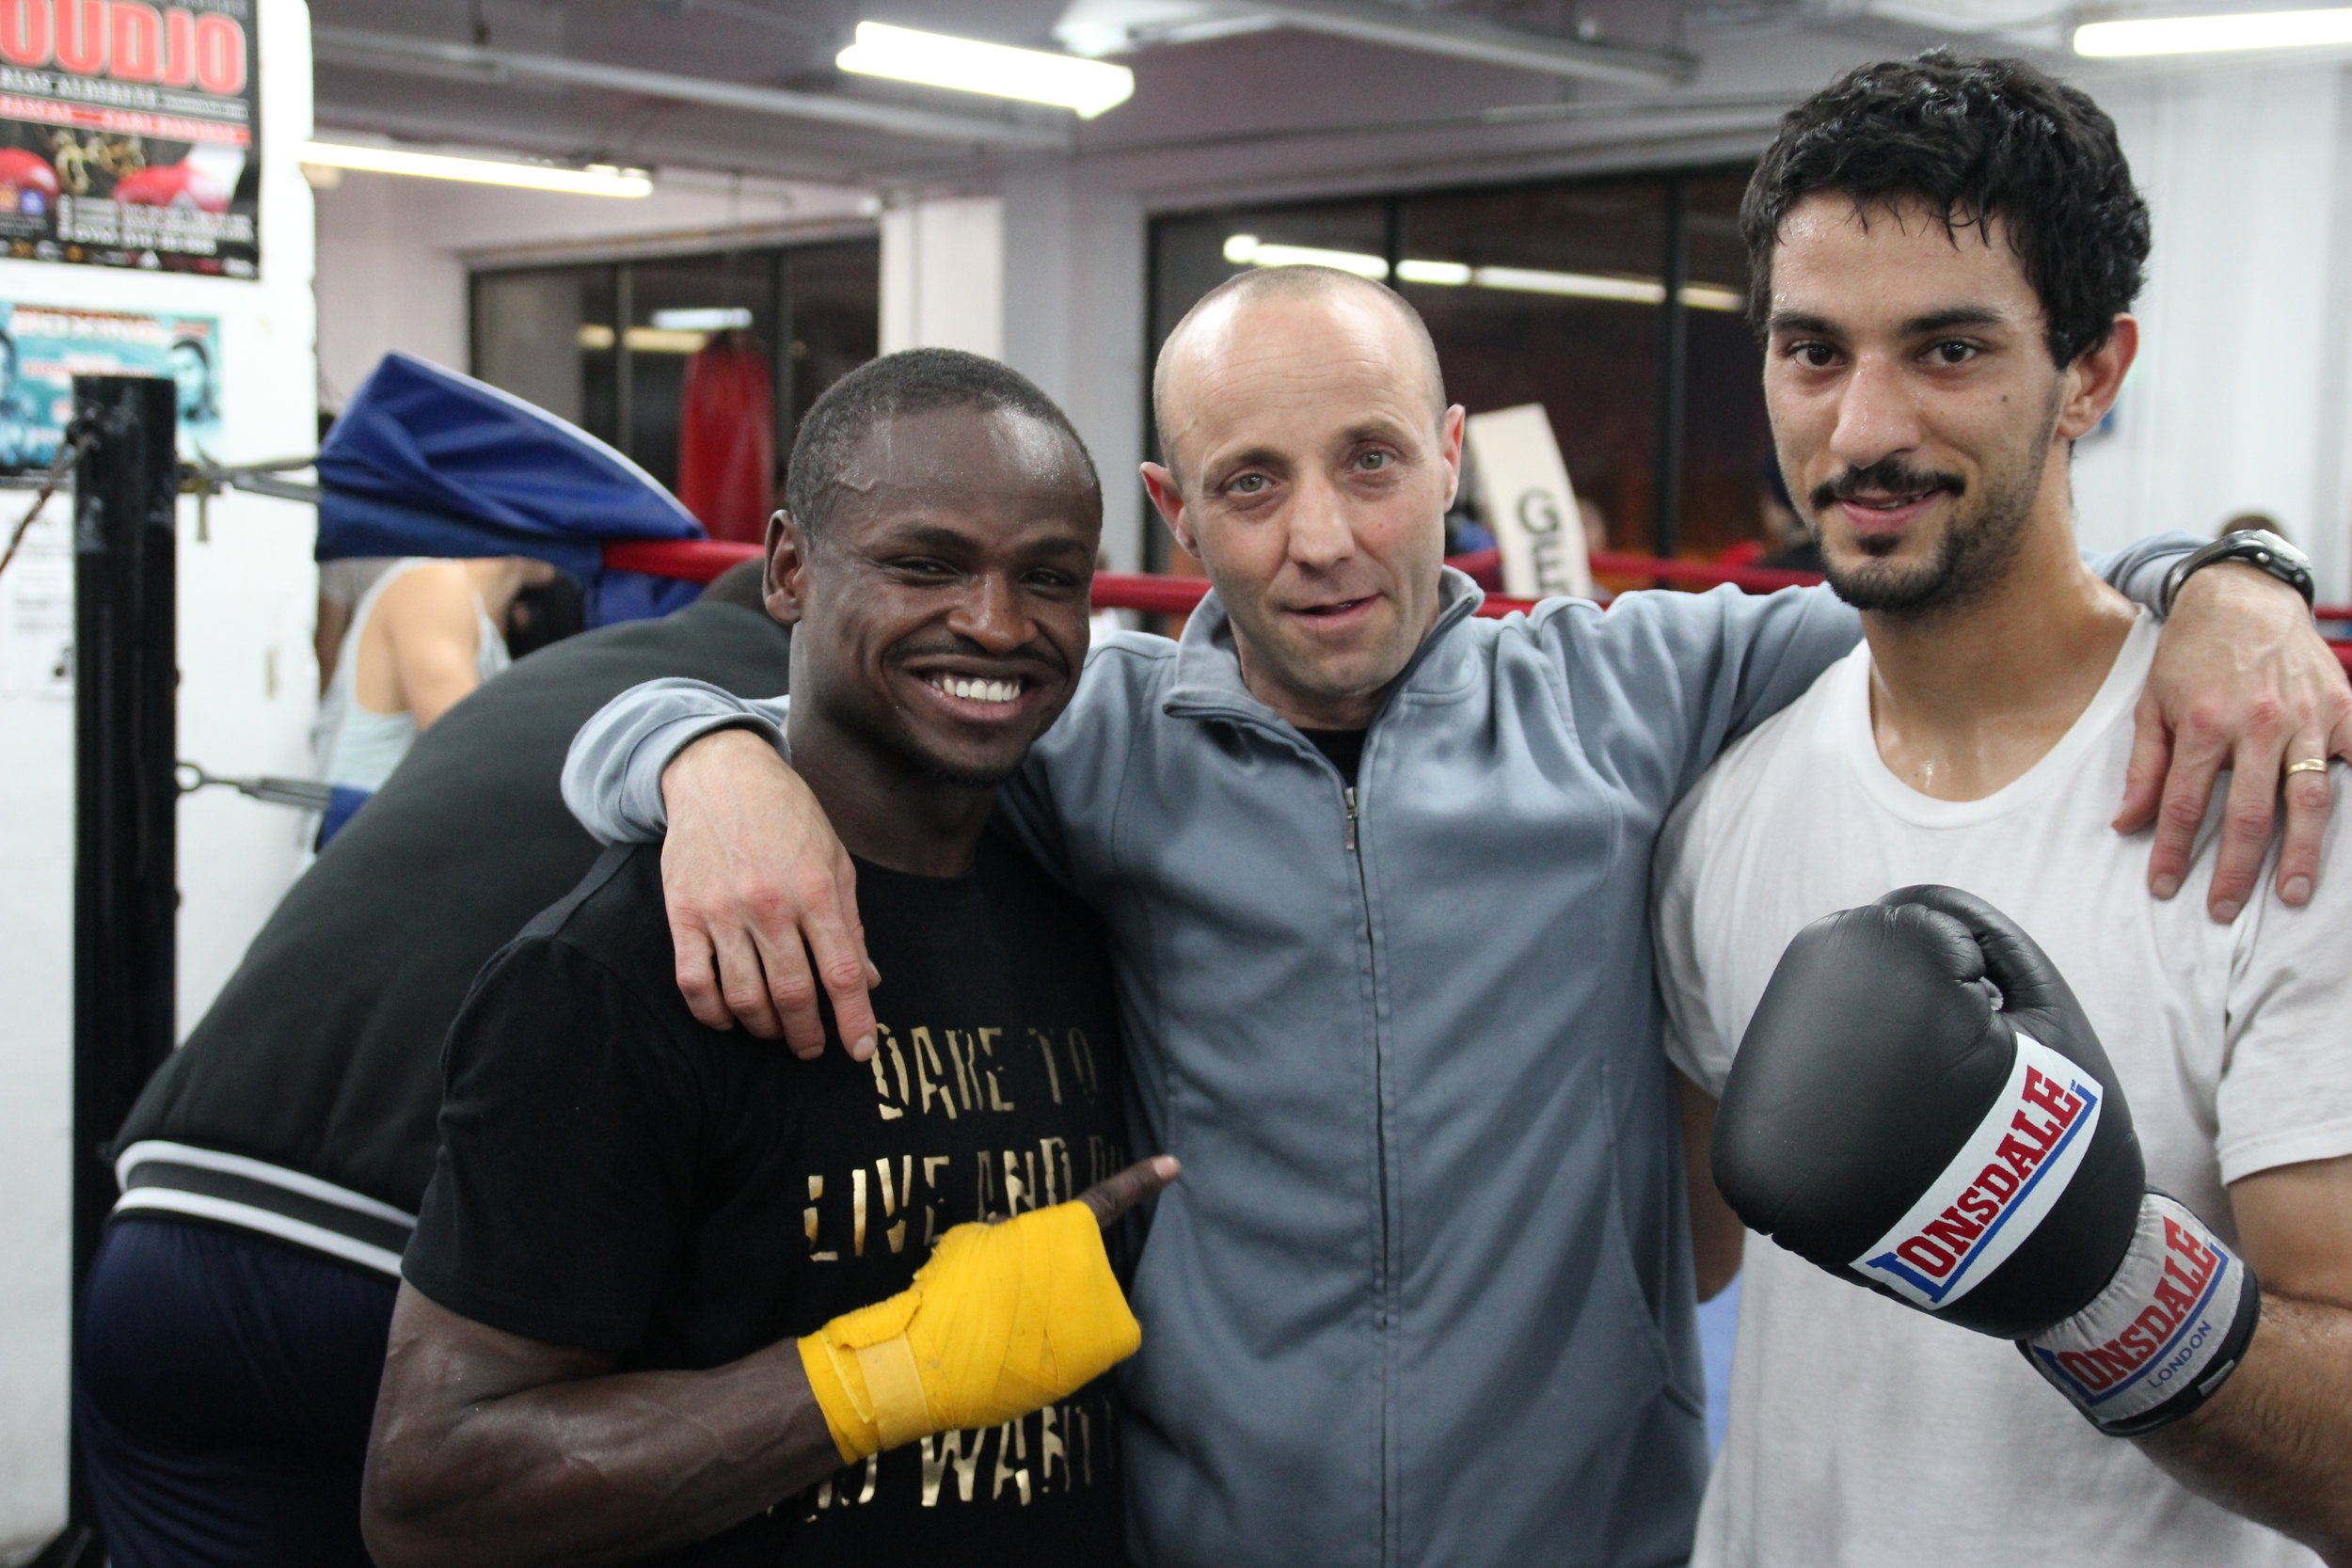 Dierry Jean, Mike Moffa, Mohamed Abdul Amir by Frederic Bohbot copy.JPG